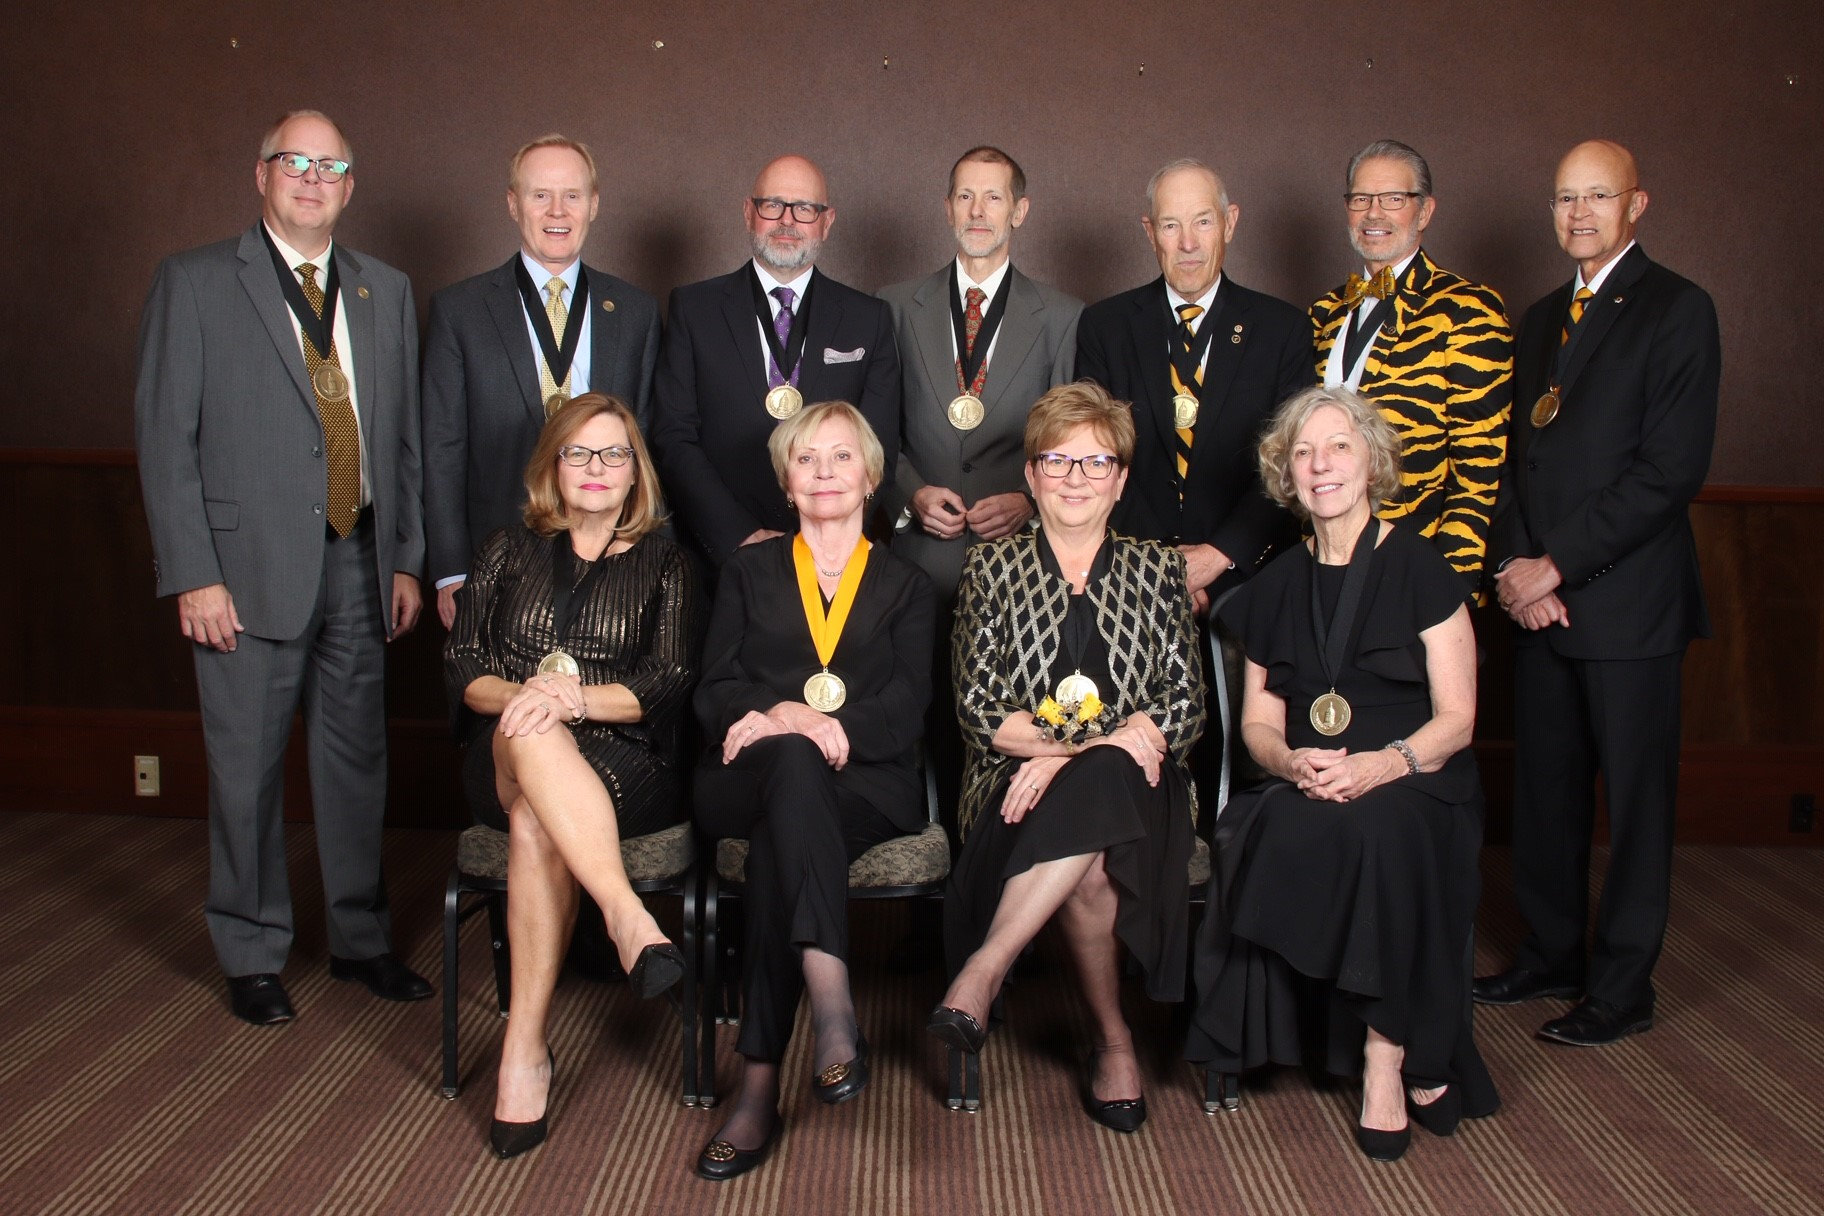 The Mizzou Alumni Association honored 12 distinguished faculty and alumni on Nov. 15. Honorees include (top row from left to right) J.D. Bowers, William Corrigan Jr., Scott Woelfel, Peter Vallentyne, Robert Banning, John Qualy and Michael Middleton. (front row left to right) Angela Drake, Margaret Duffy, Susan Donnell Scott and Jeanne Abbott. Thomas Lafferre not pictured.